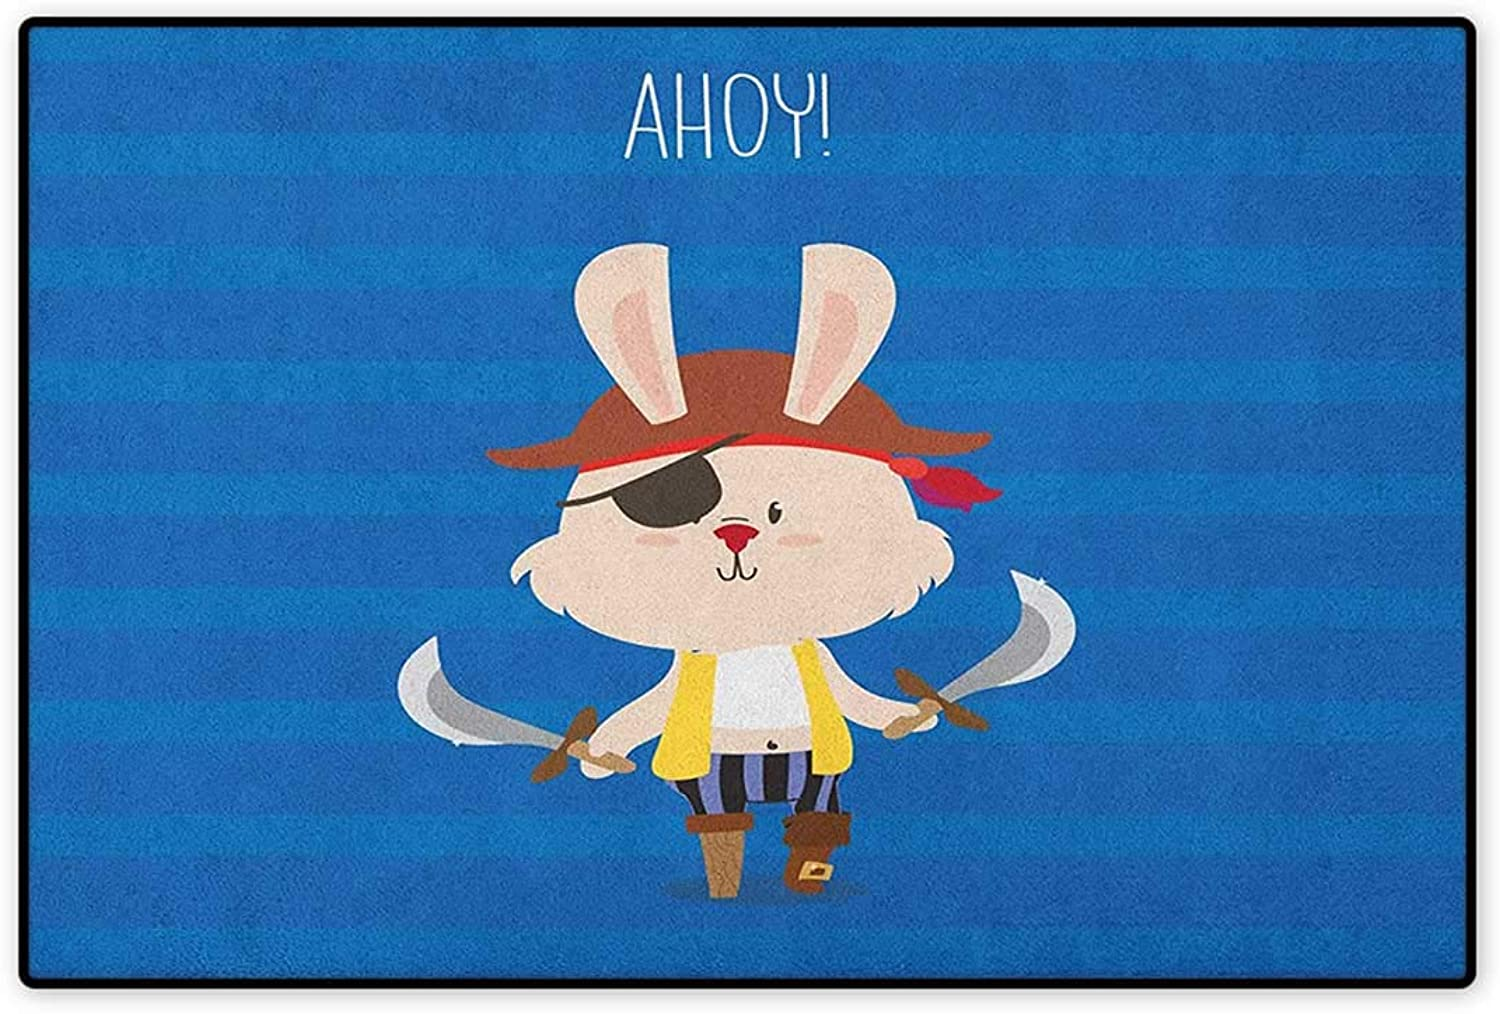 Ahoy Its a Boy,Door Mat Non Slip,Pretty Pirate Rabbit Bunny with Eye Patch Funny Graphic Cartoon Illustration,Floor Mat for Tub,Multicolor,Size,32 x48  (W80cm x L120cm)